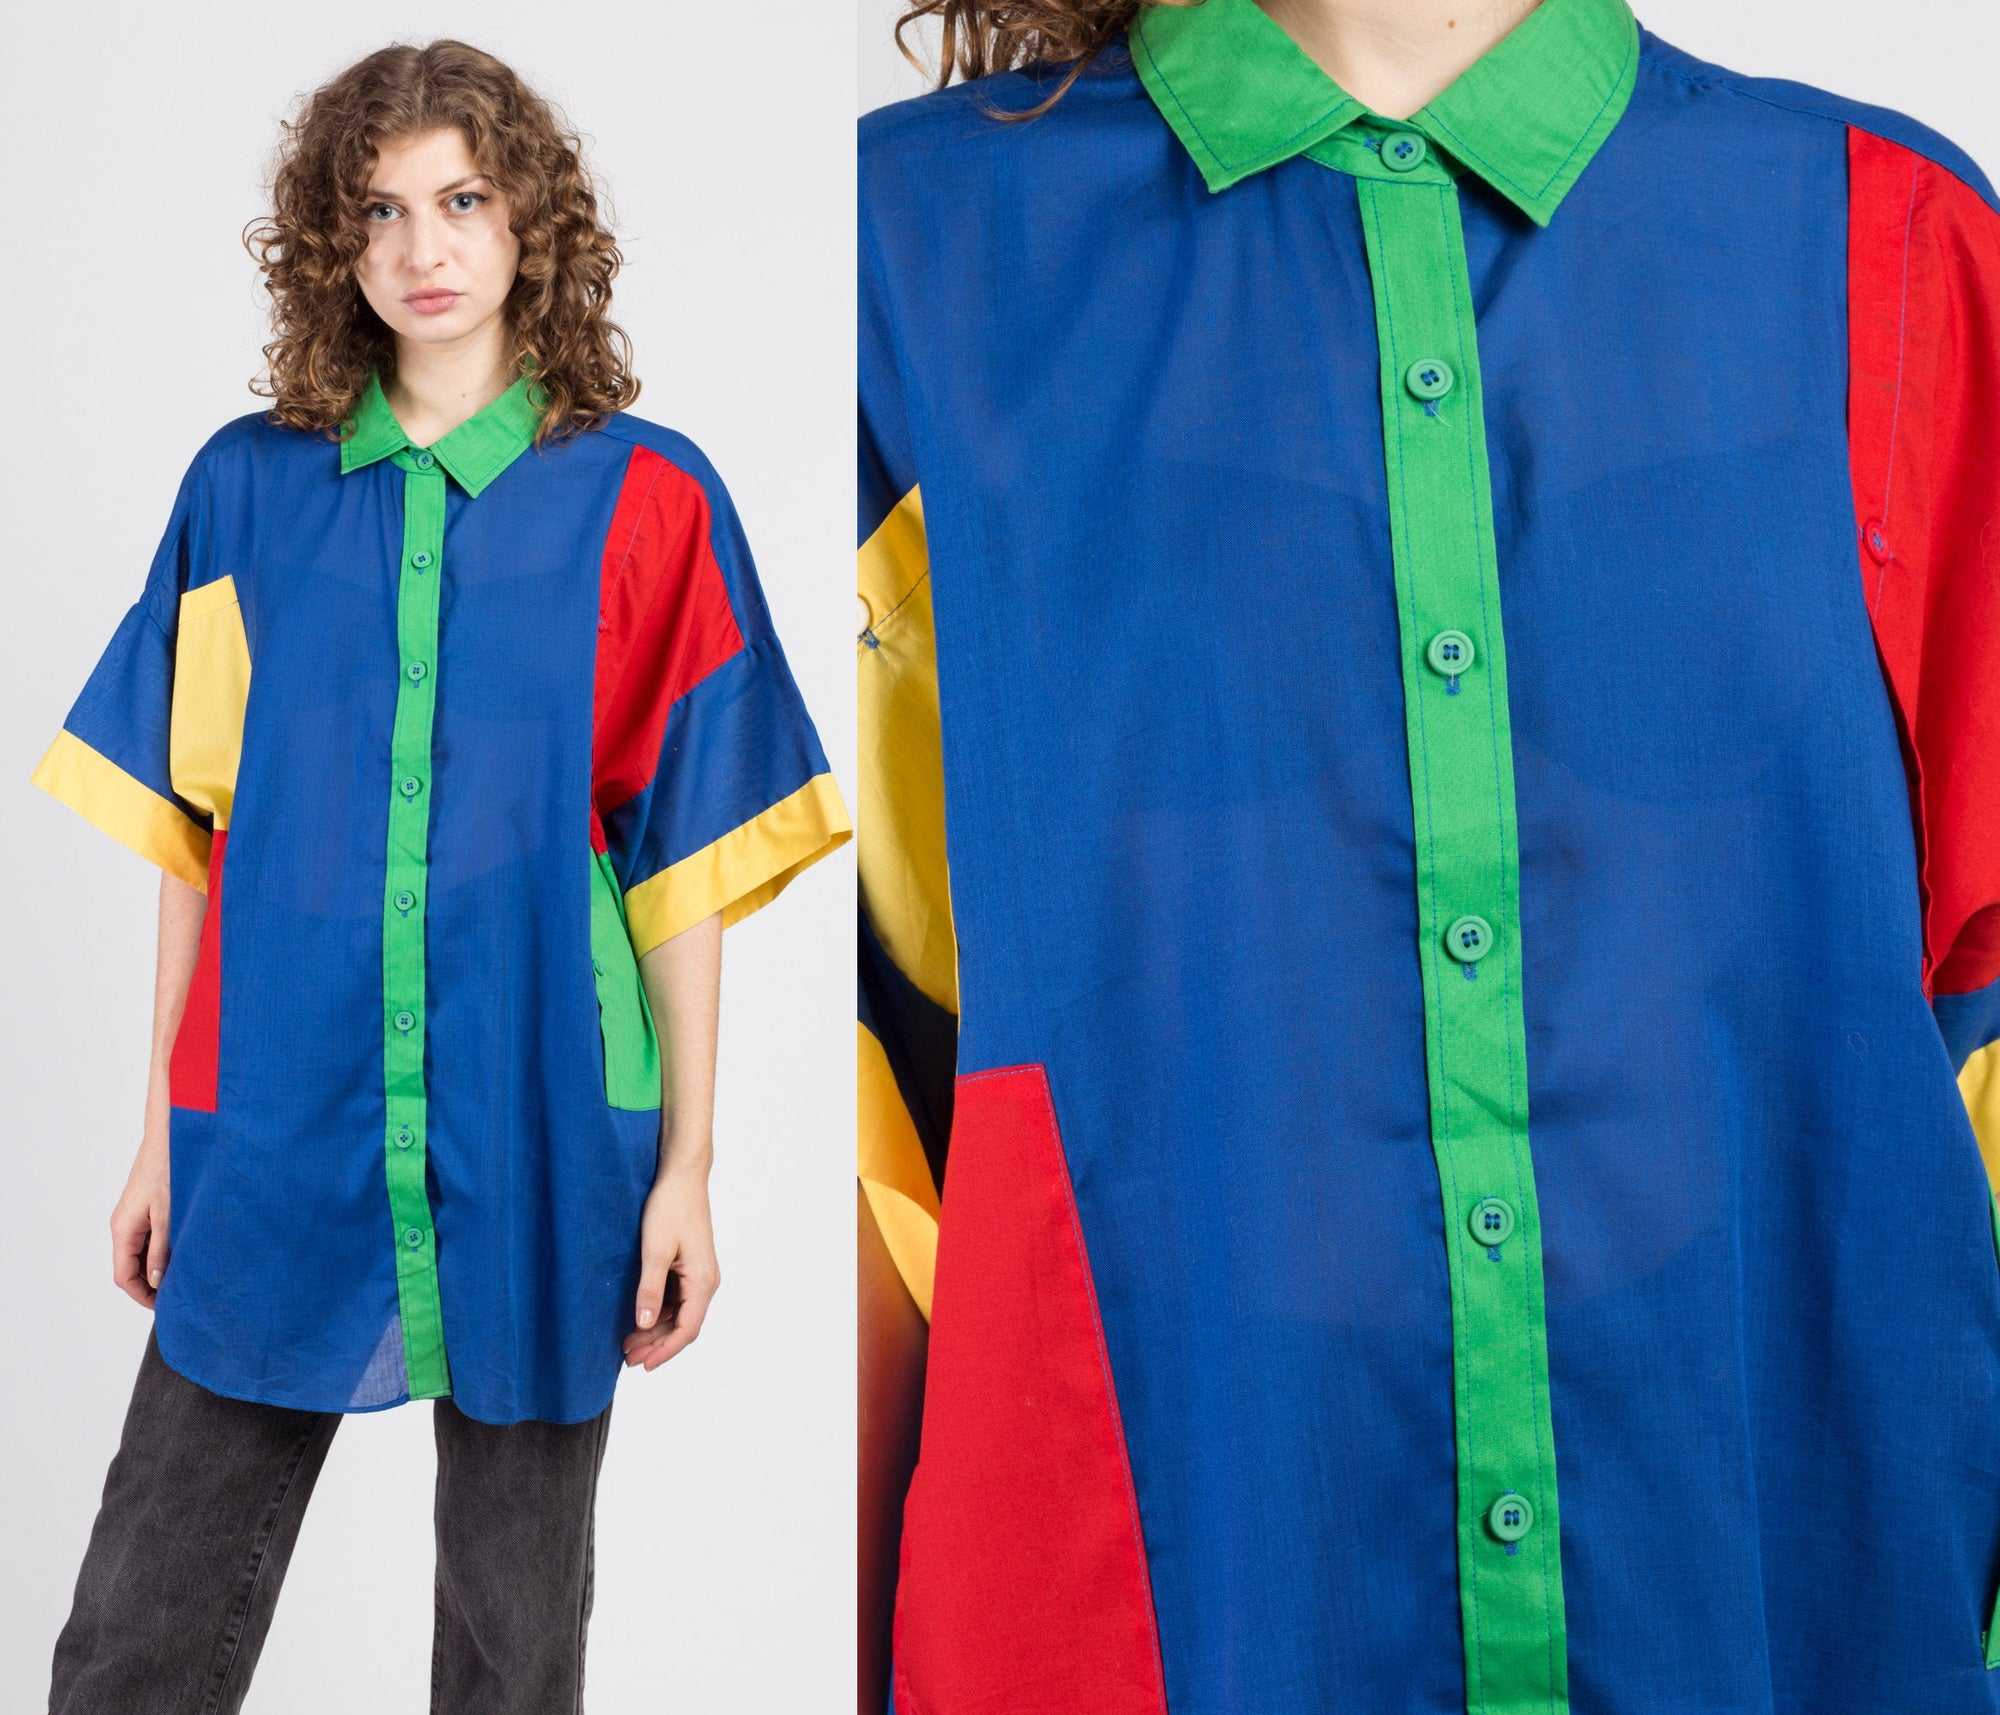 90s Primary Color Oversized Button Up Shirt - Mens 2XL